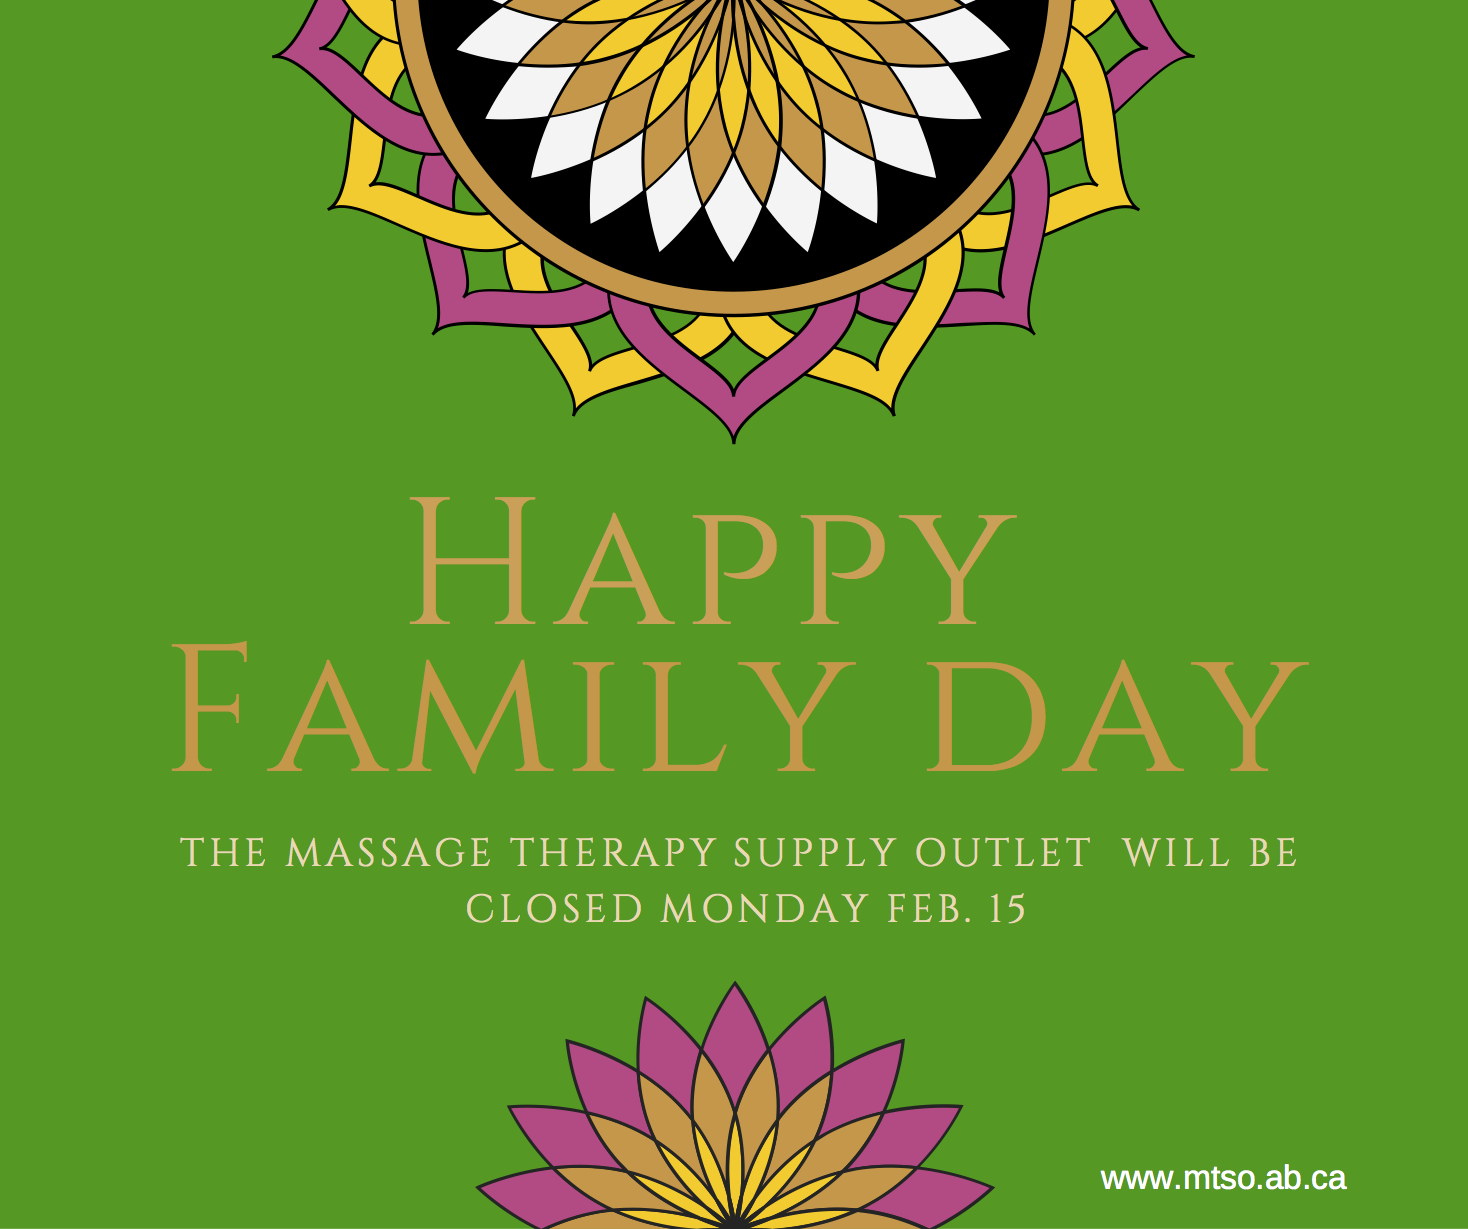 Closed for Family Day Monday Feb. 15